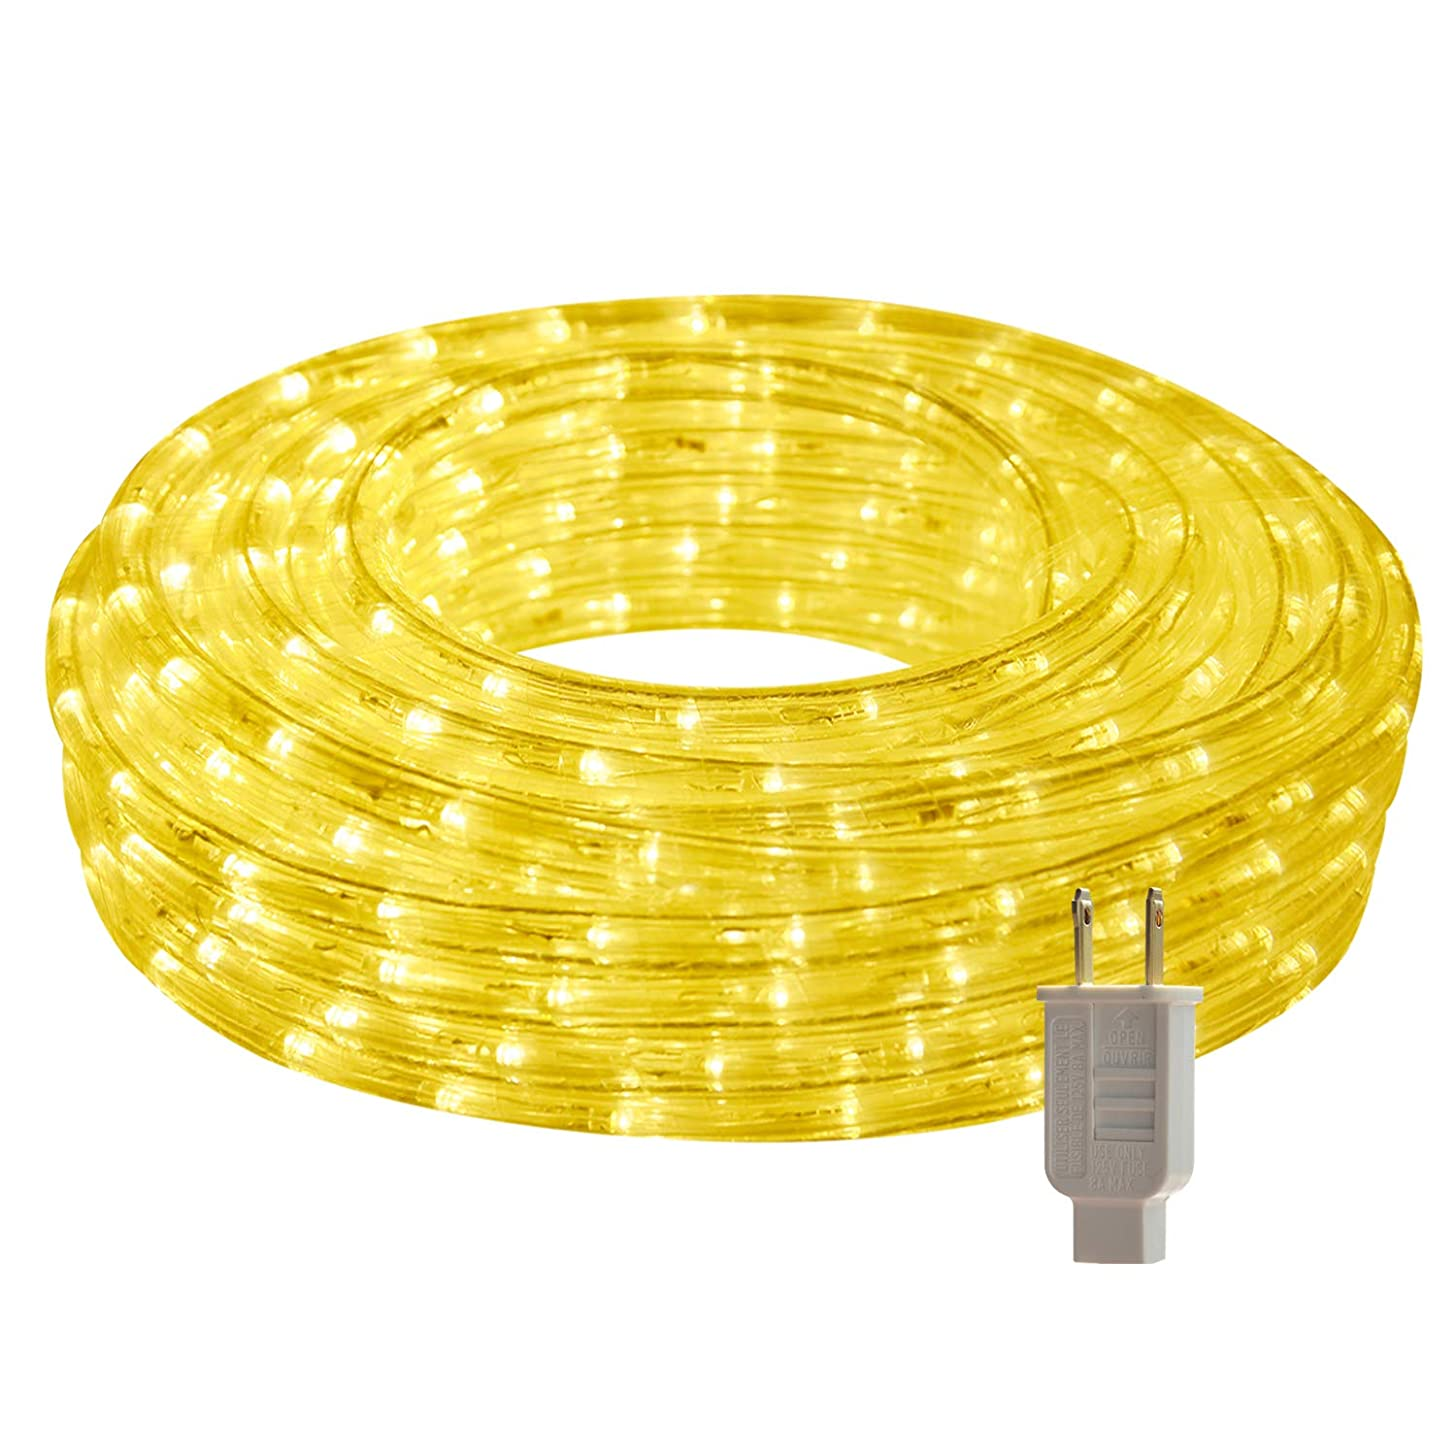 LED Rope Lights, 26.3ft Flat Flexible Light Strip, 3000K Warm White, Water Resistant for Both Indoor/Outdoor Use, Inter-Connectable, UL Certified, Decorative Lighting for Any Location.